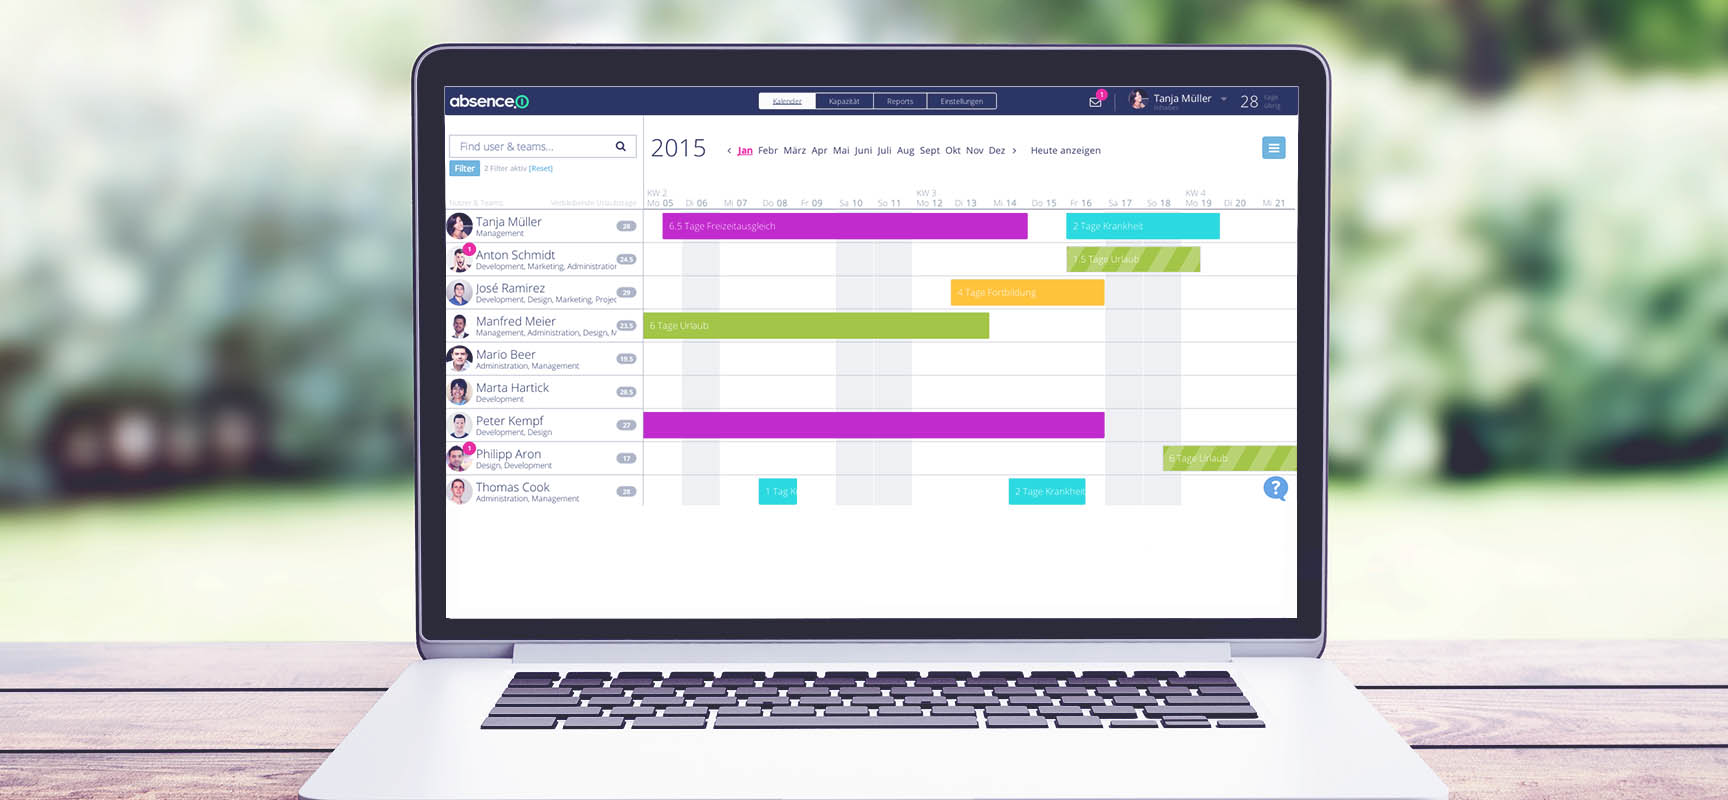 absence.io allows employees to request leave online through the integrated absence calendar